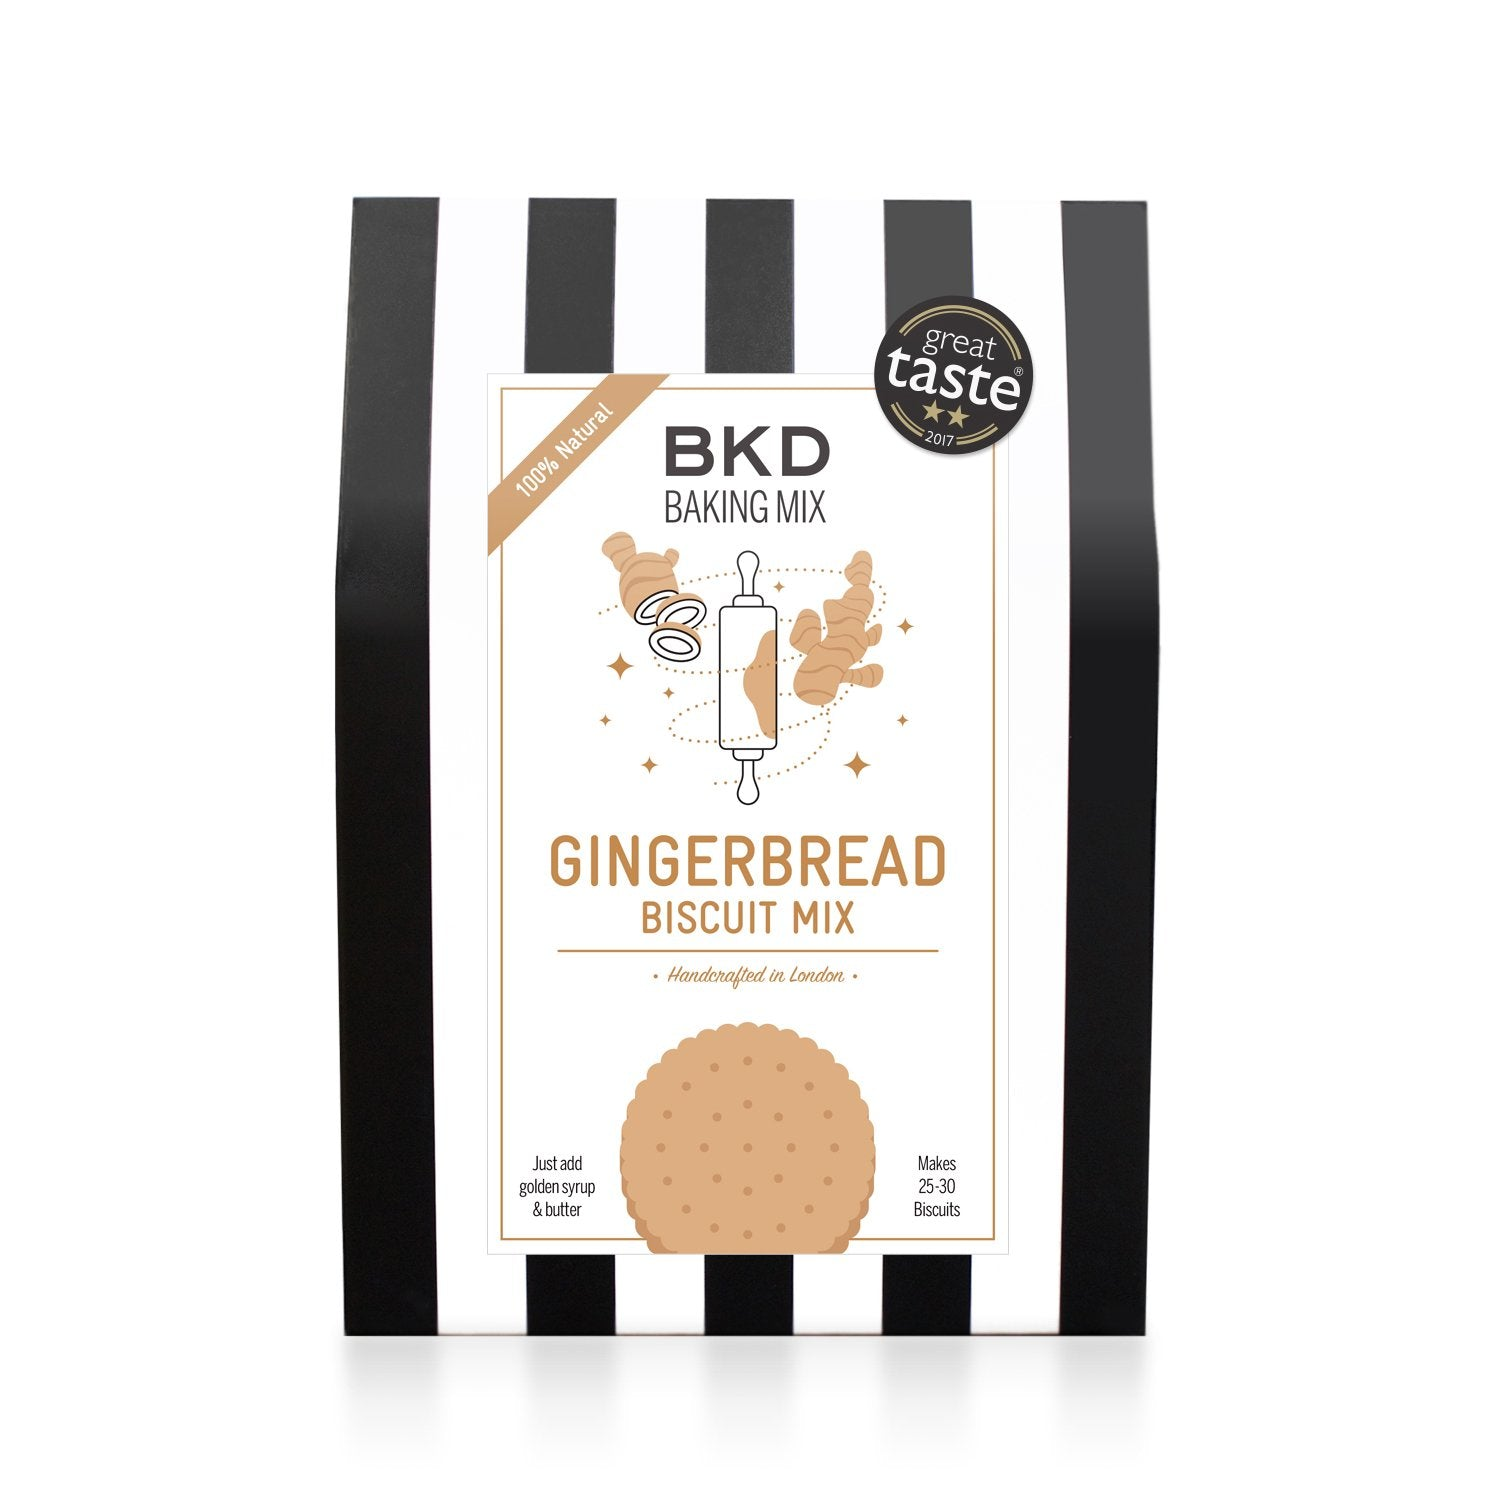 gingerbread biscuit mix